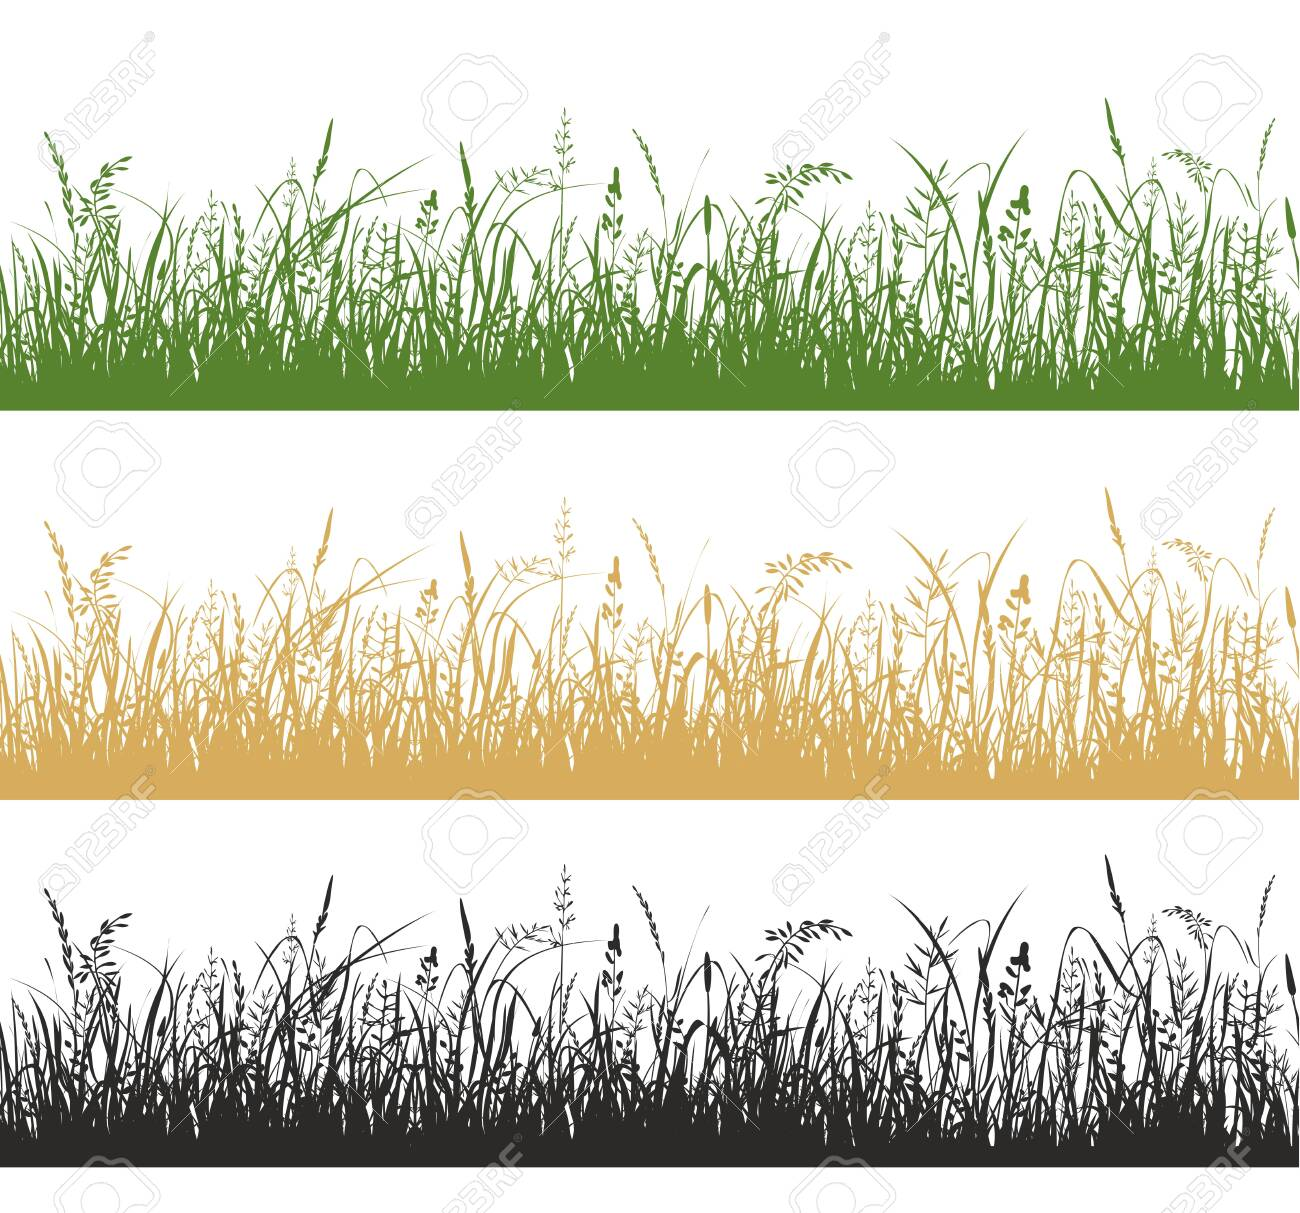 Grass and meadow plants silhouette illustrations set - 137803248